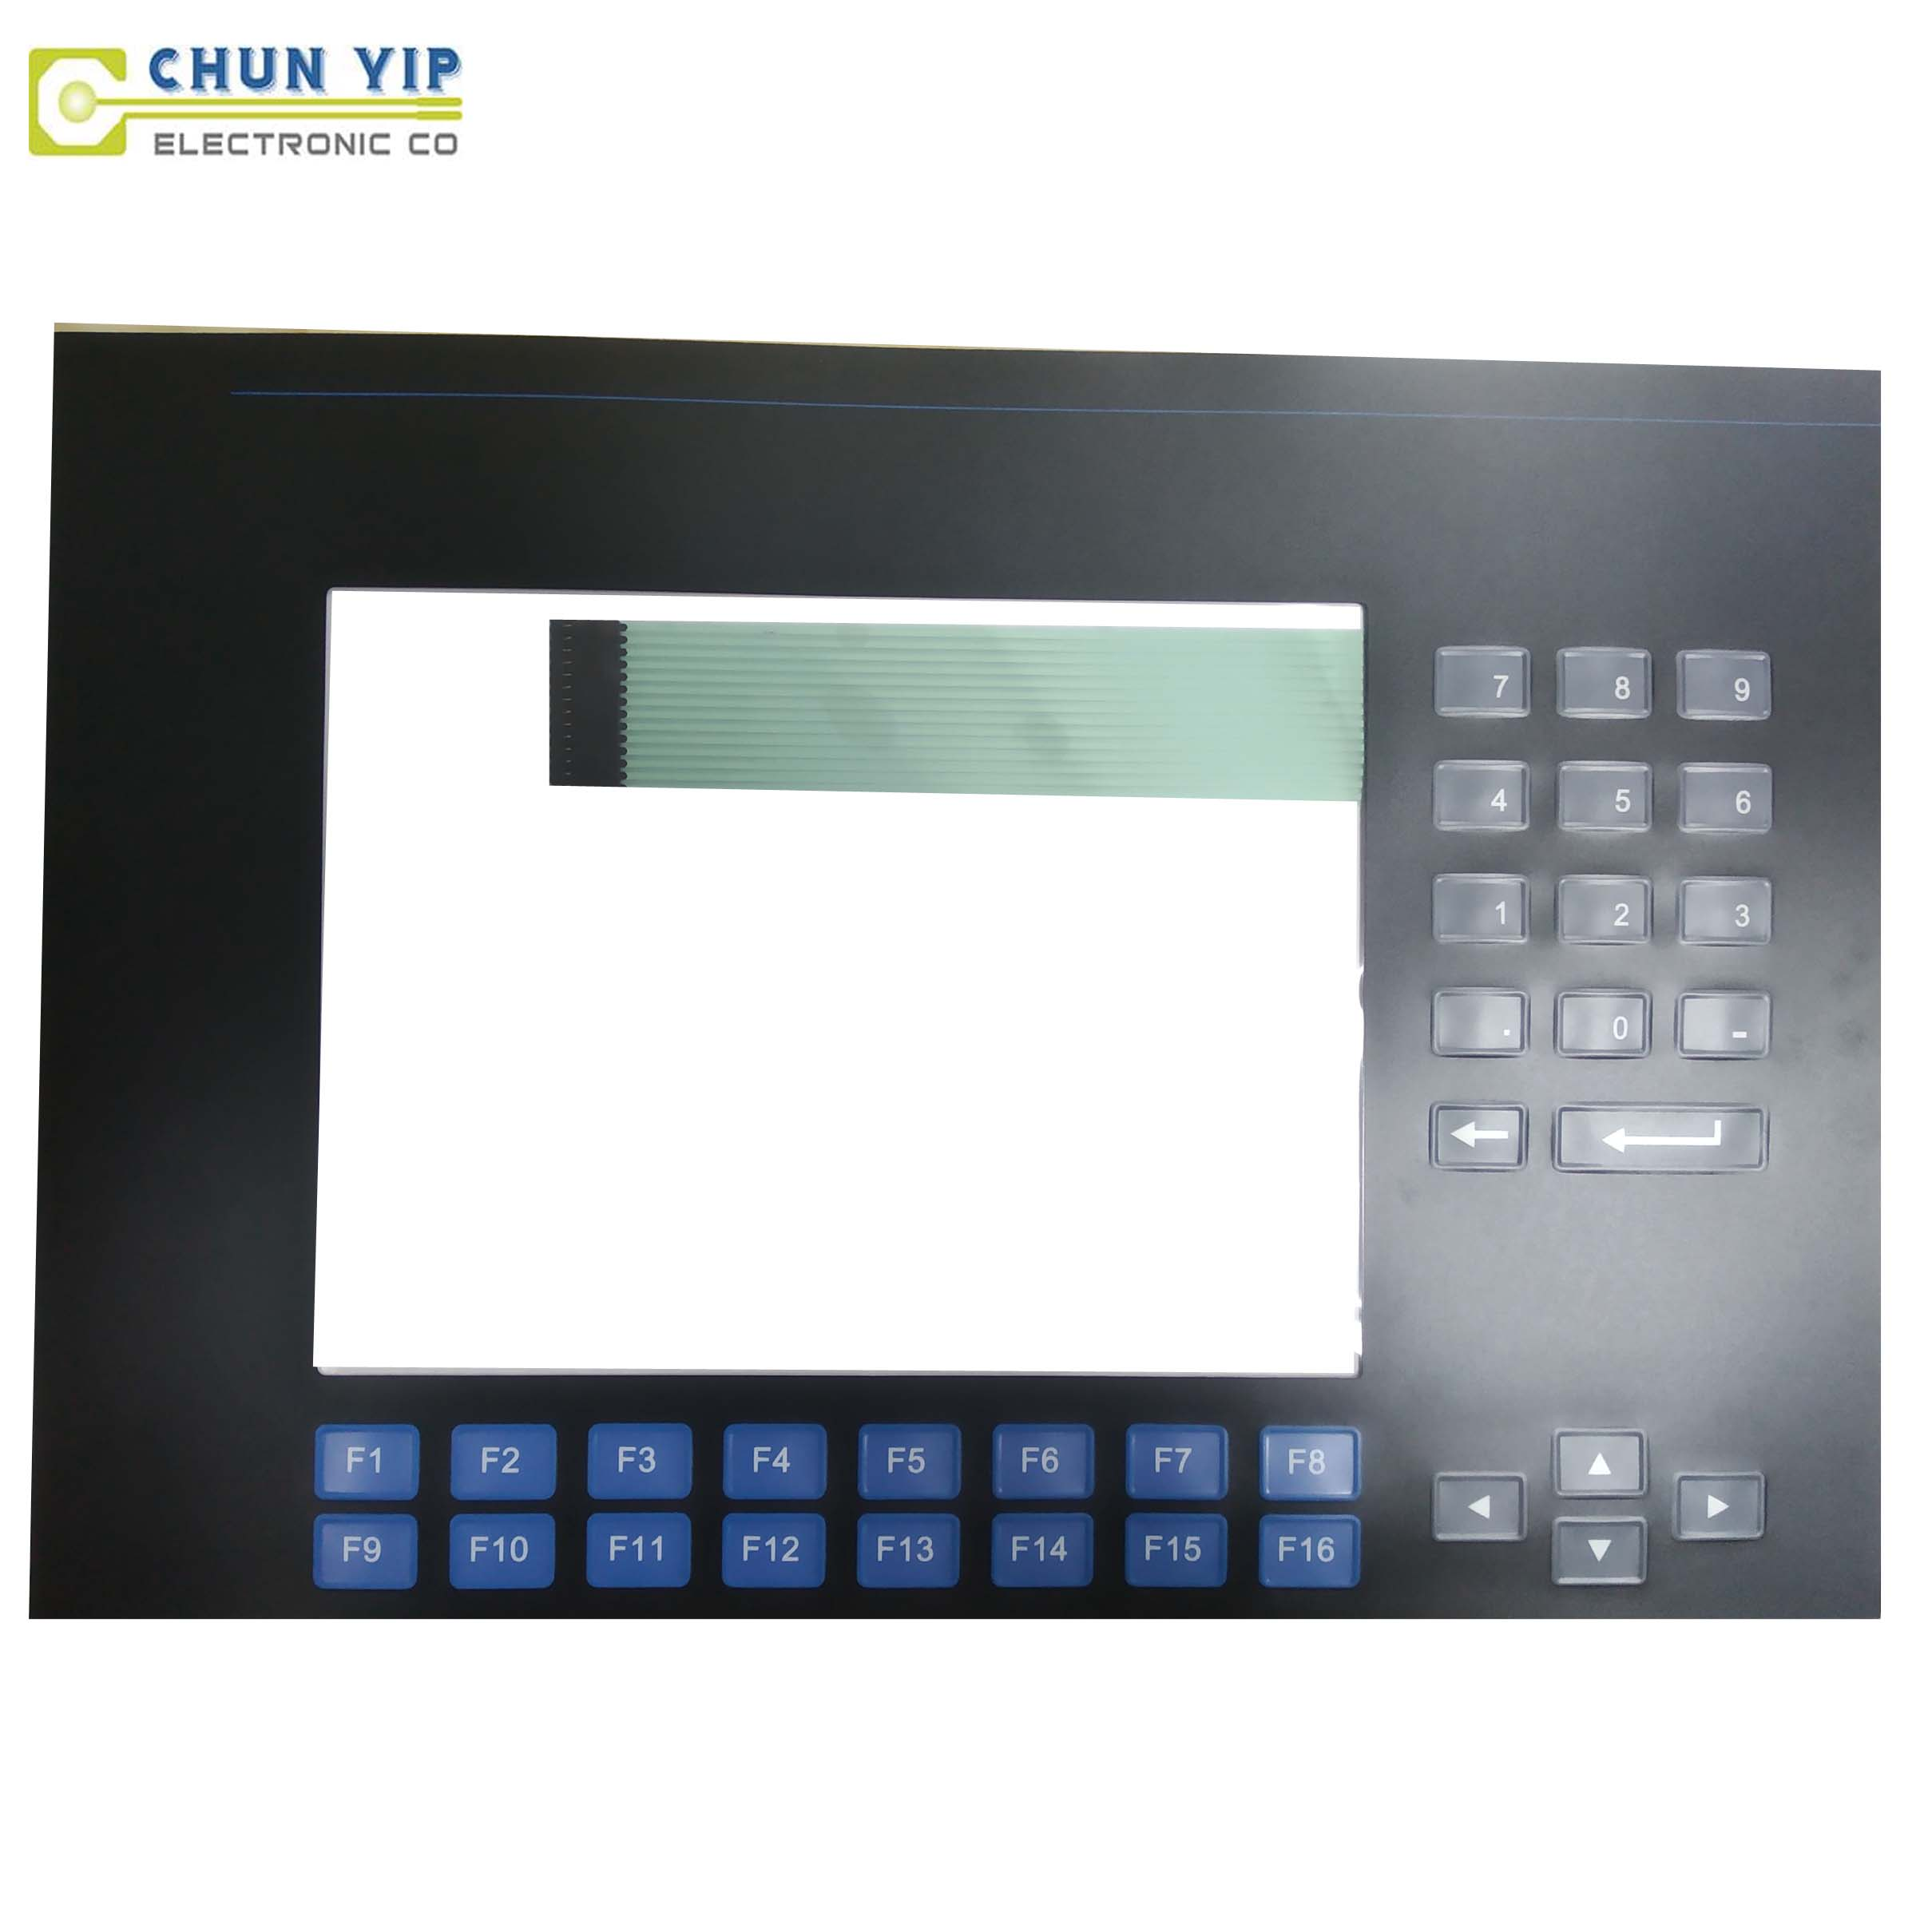 Alu_Zinc Corrugated Sheet Membrane Silicone Rubber Keypad -